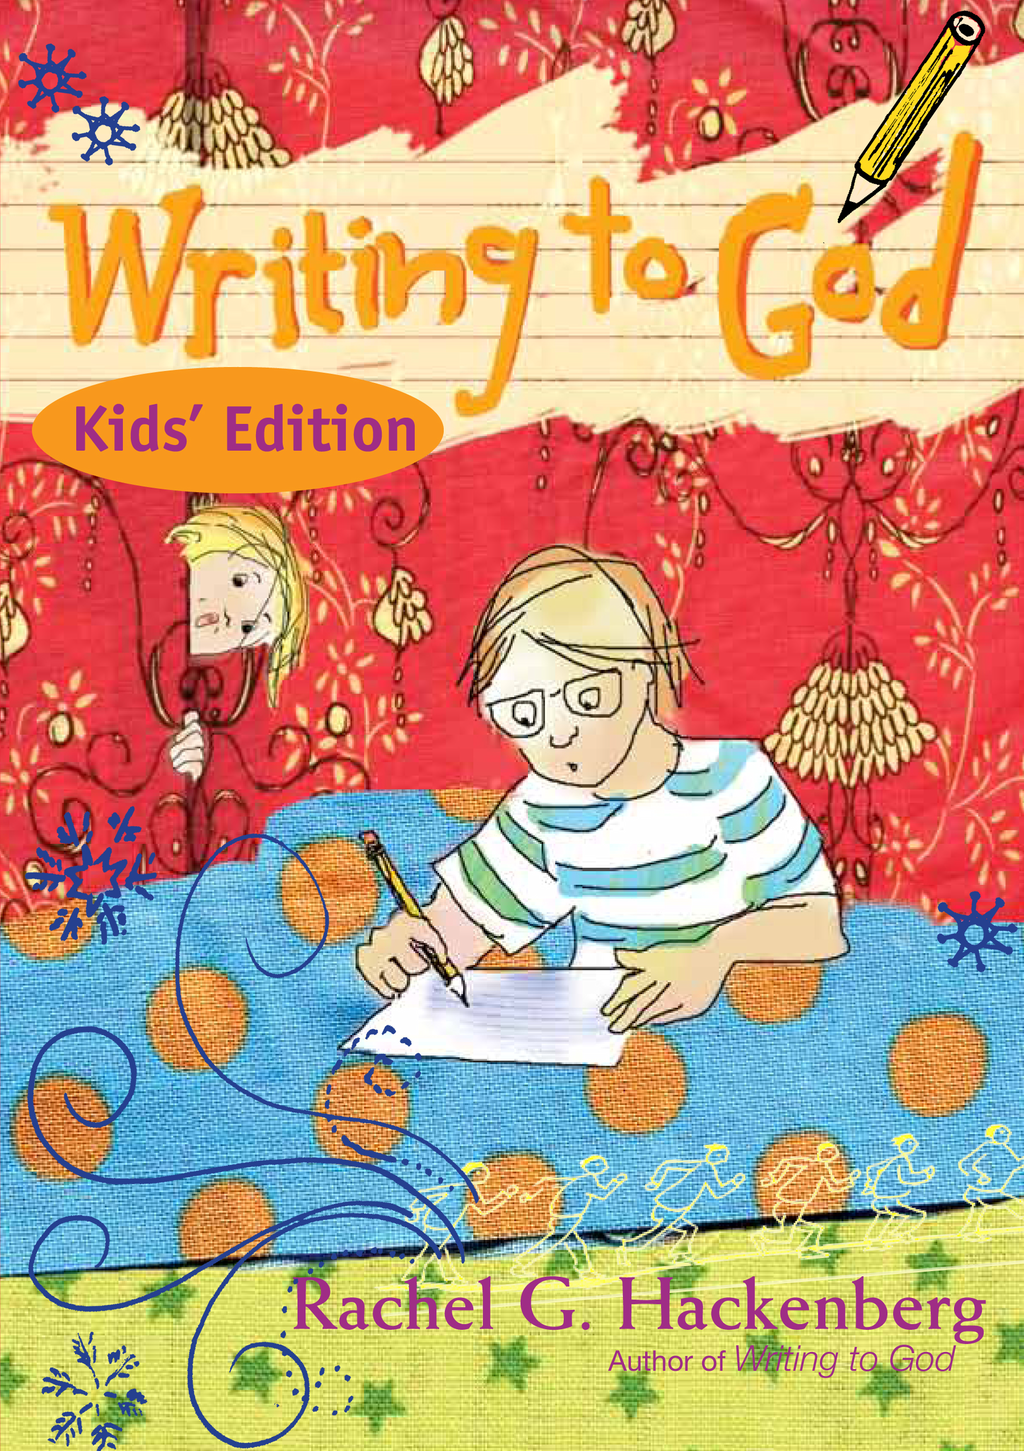 Writing to God: Kids' Edition